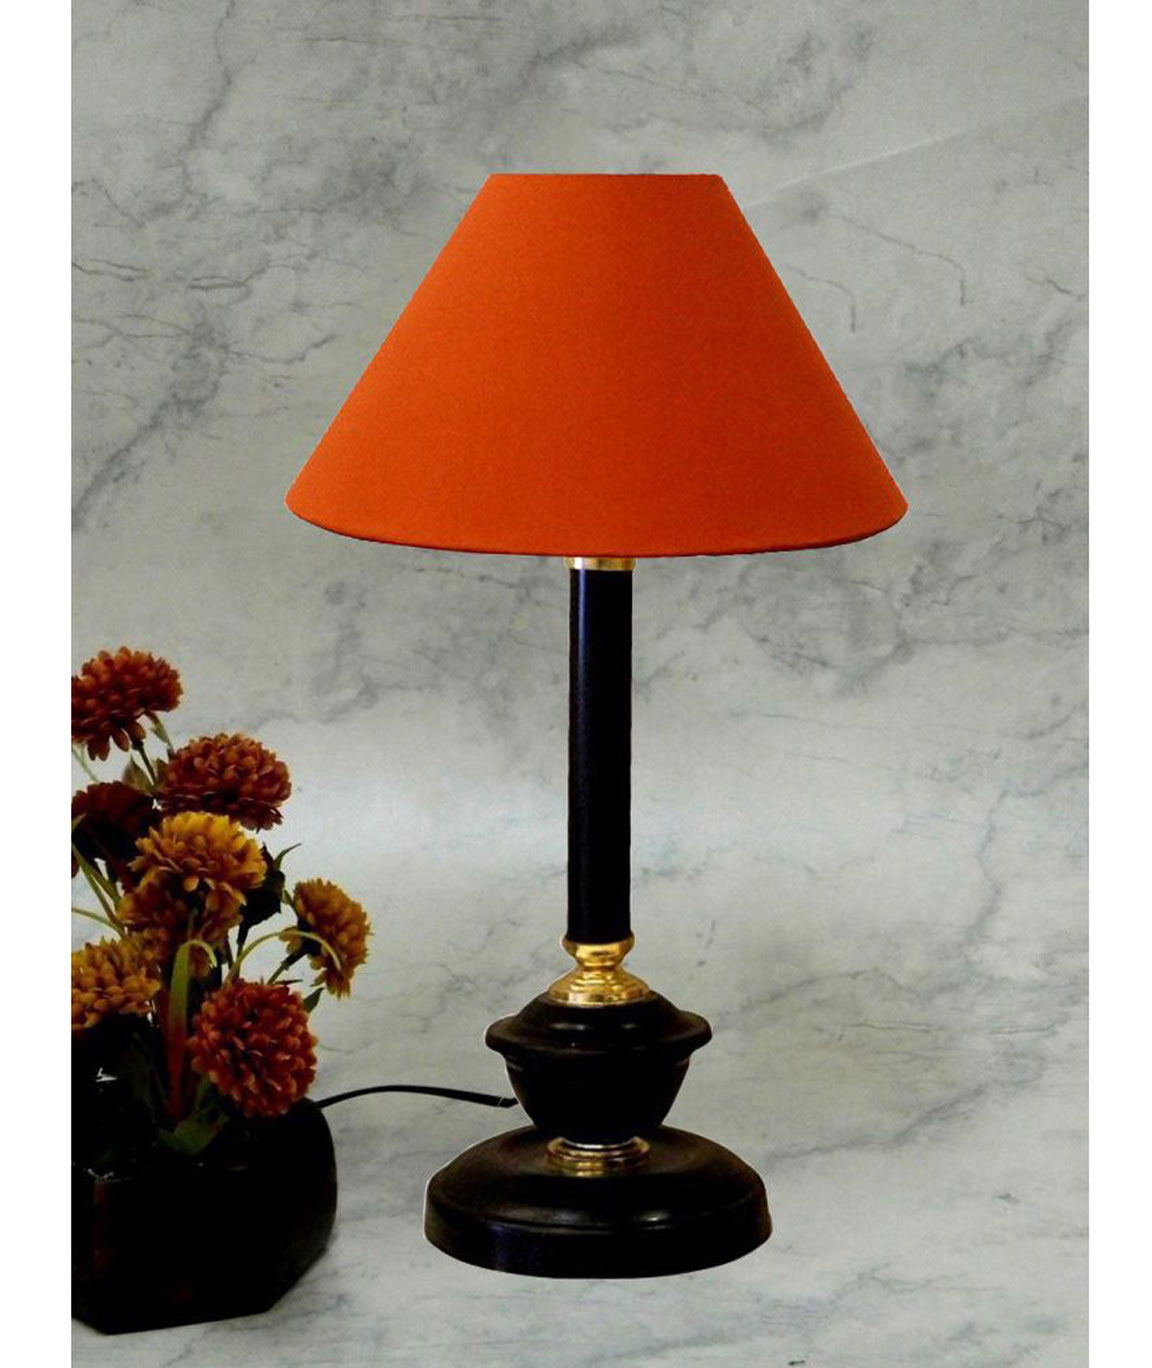 RDC Black Golden Table Lamp with 10 Inches Round Plain Rust-coloured Lamp Shade